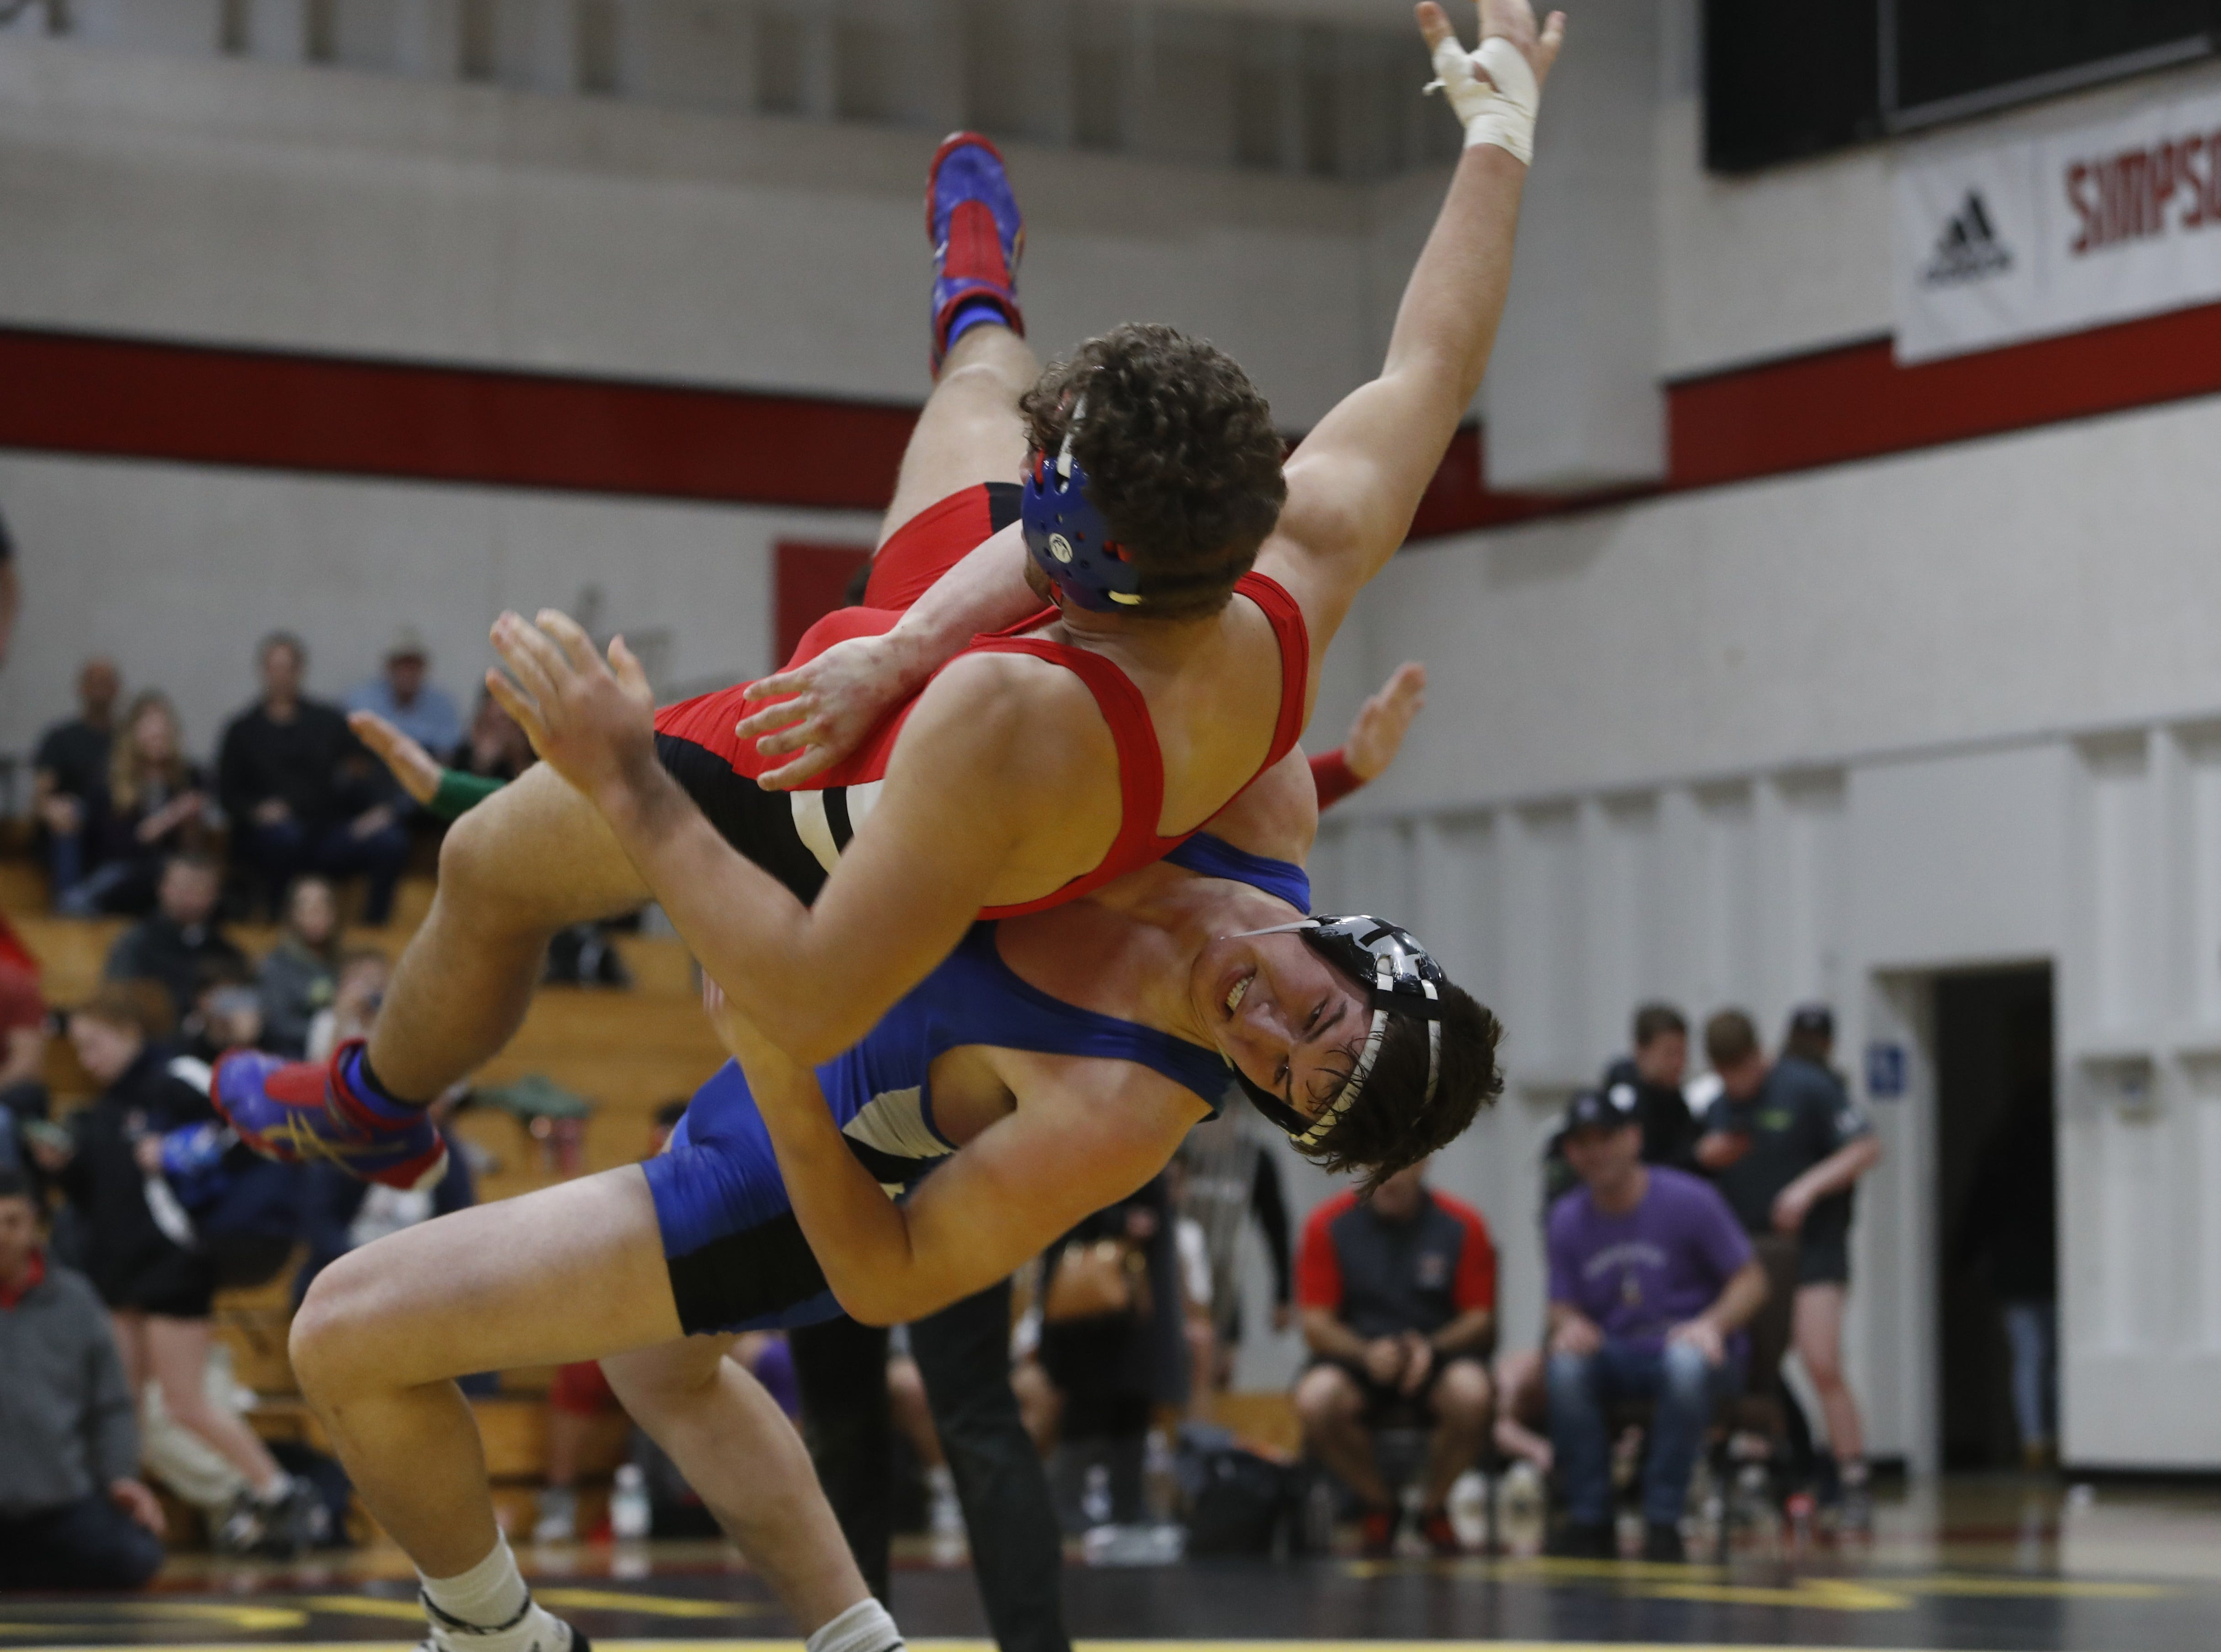 California's Reagan Dahle of Big Valley (right) takes down Oregon's Kianush Behbehani-Escobar of Westview at the ORCA Senior All-Star Duals at Simpson University on Saturday, March 9.